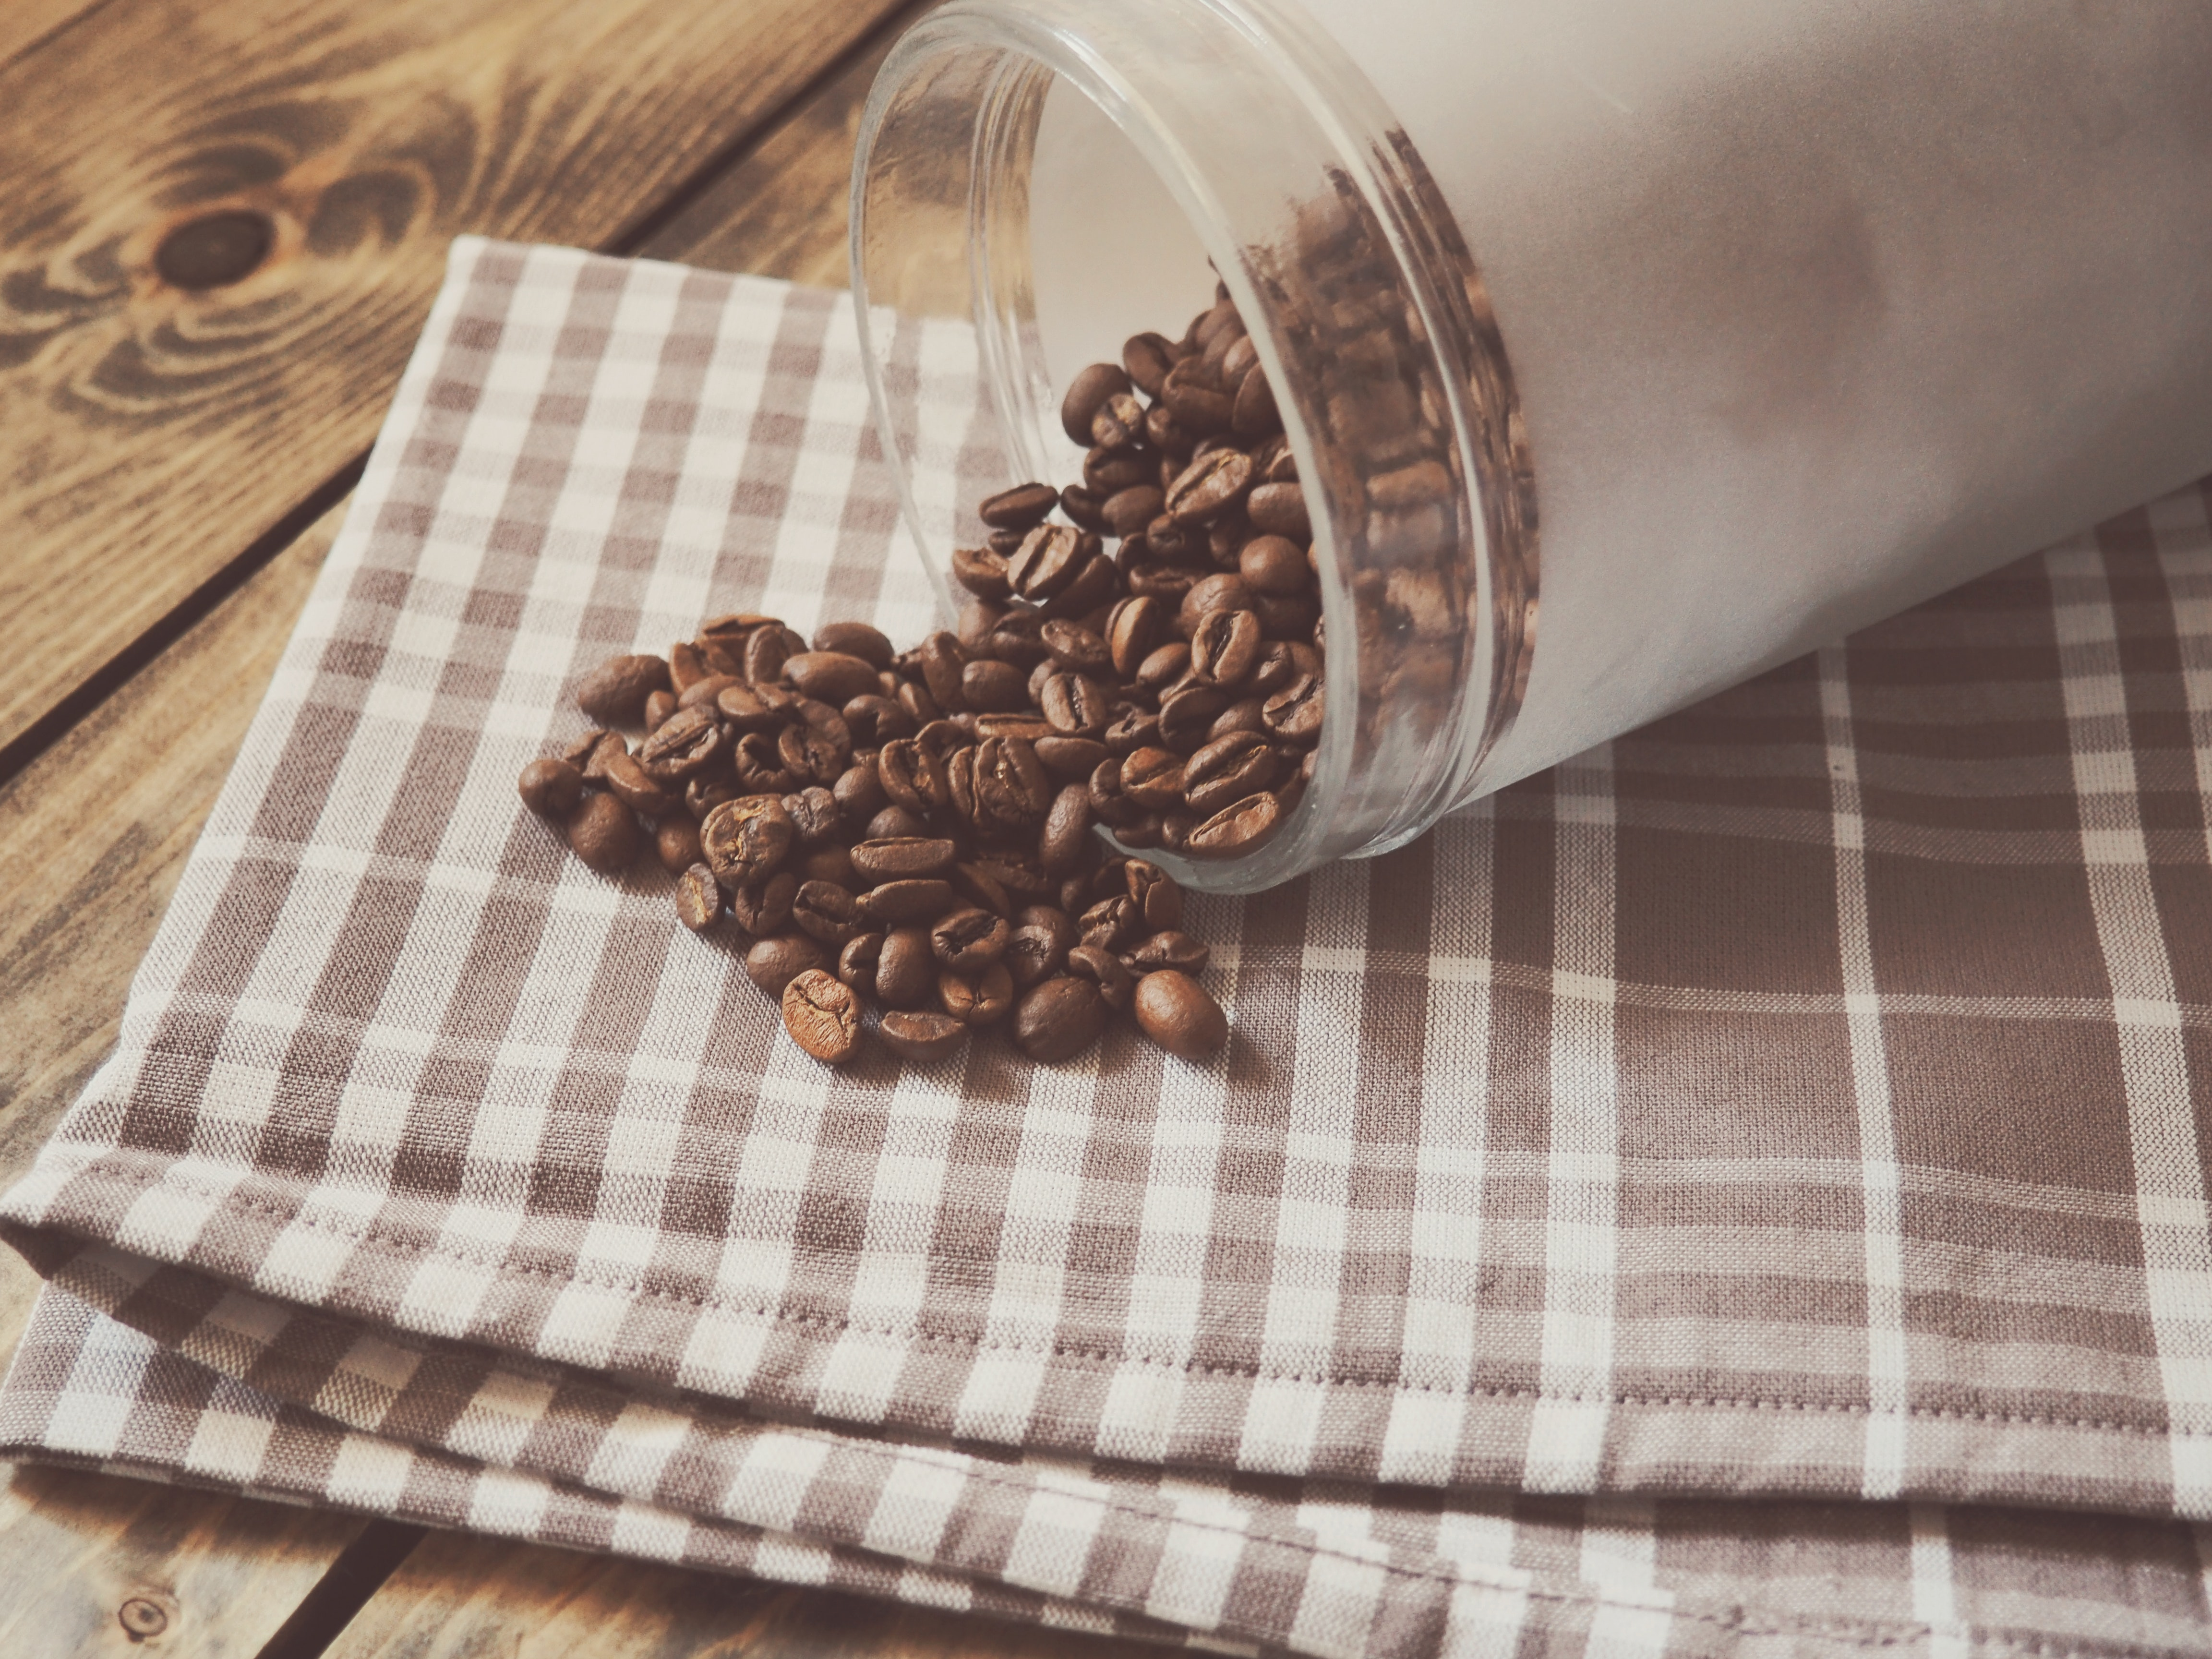 Coffee Beans Spilled on Gray and White Plaid Textile, Brown, Cafe, Caffeine, Coffee, HQ Photo